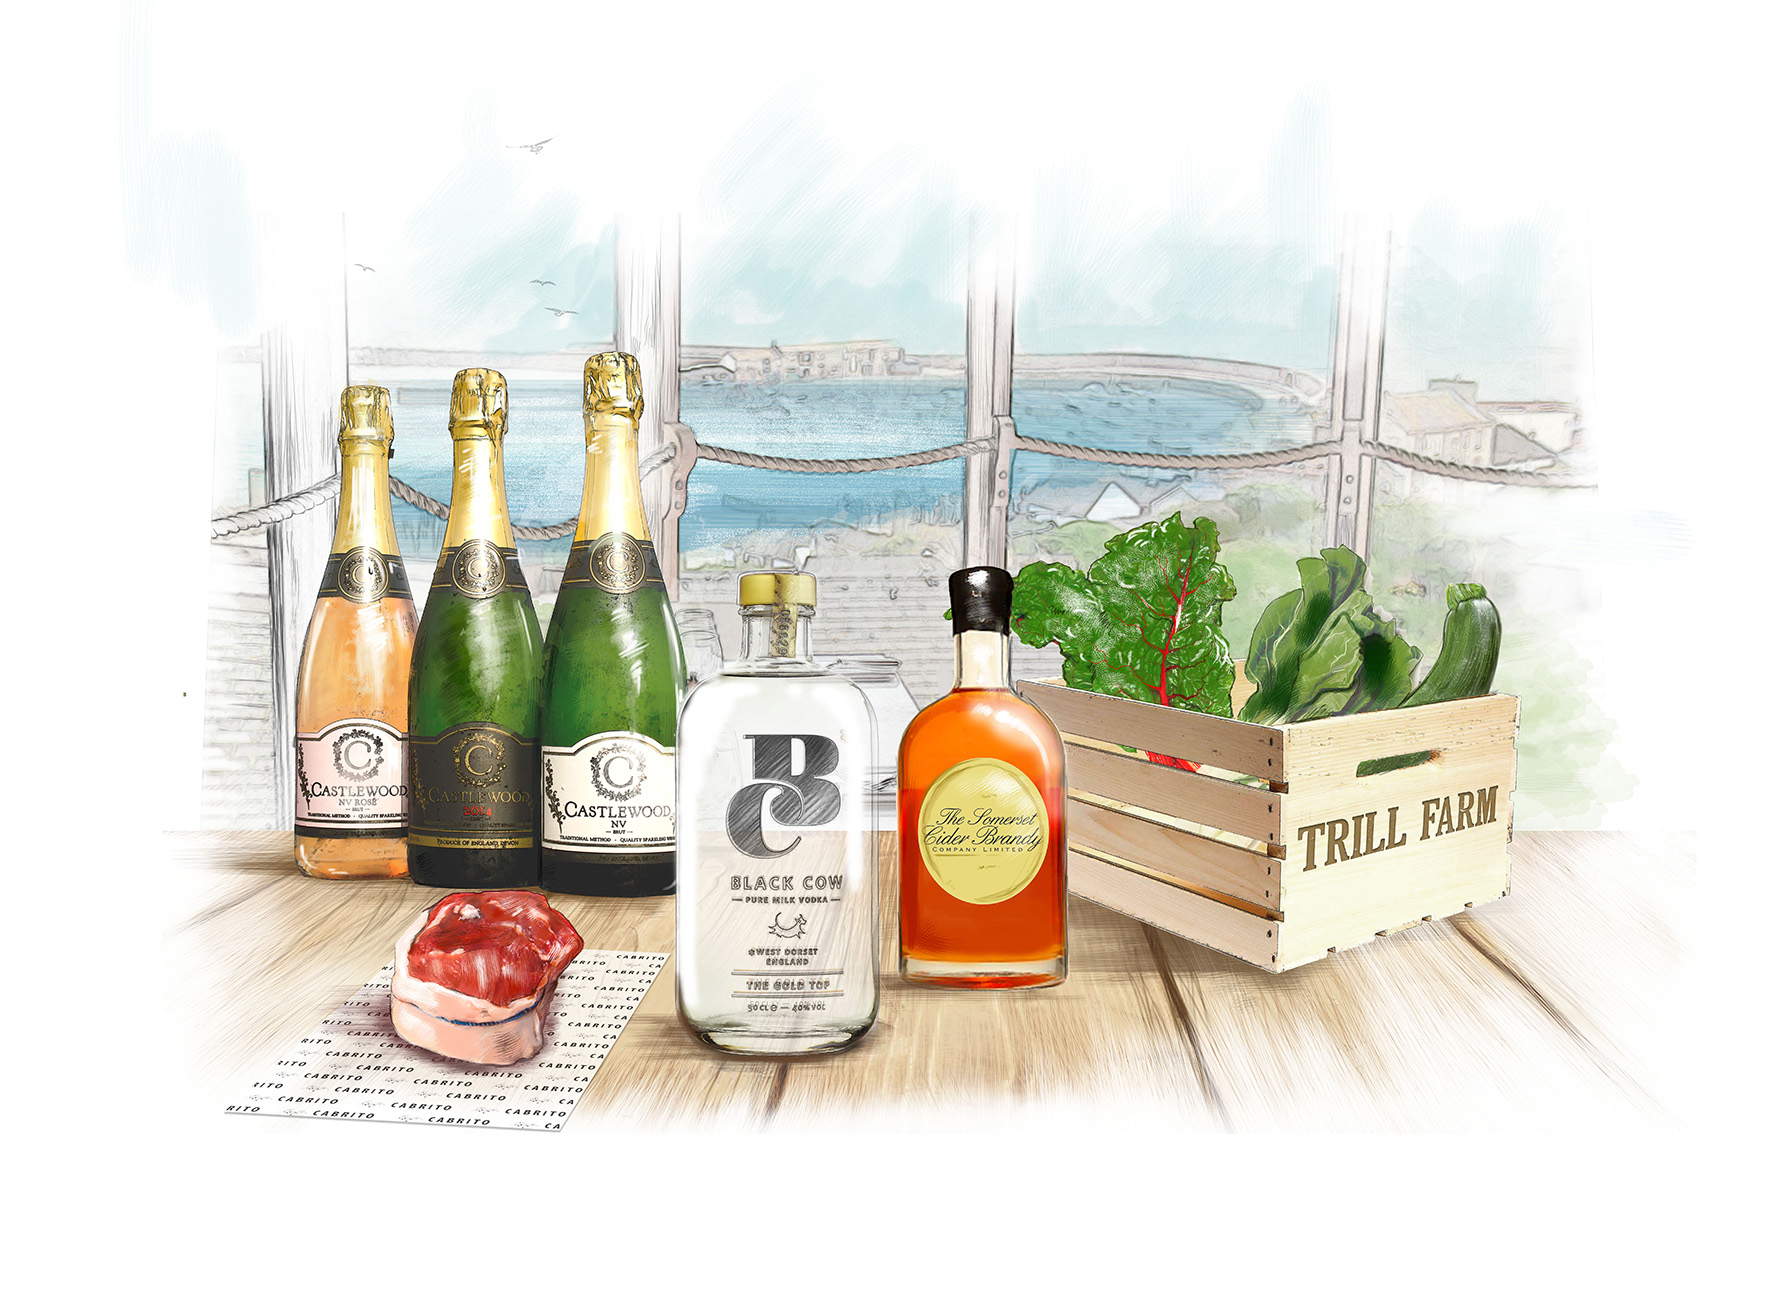 South West producers including Cabrito, Trill Farm, Black Cow Vodka, Castle Rock Wines and Somerset Cider Brandy